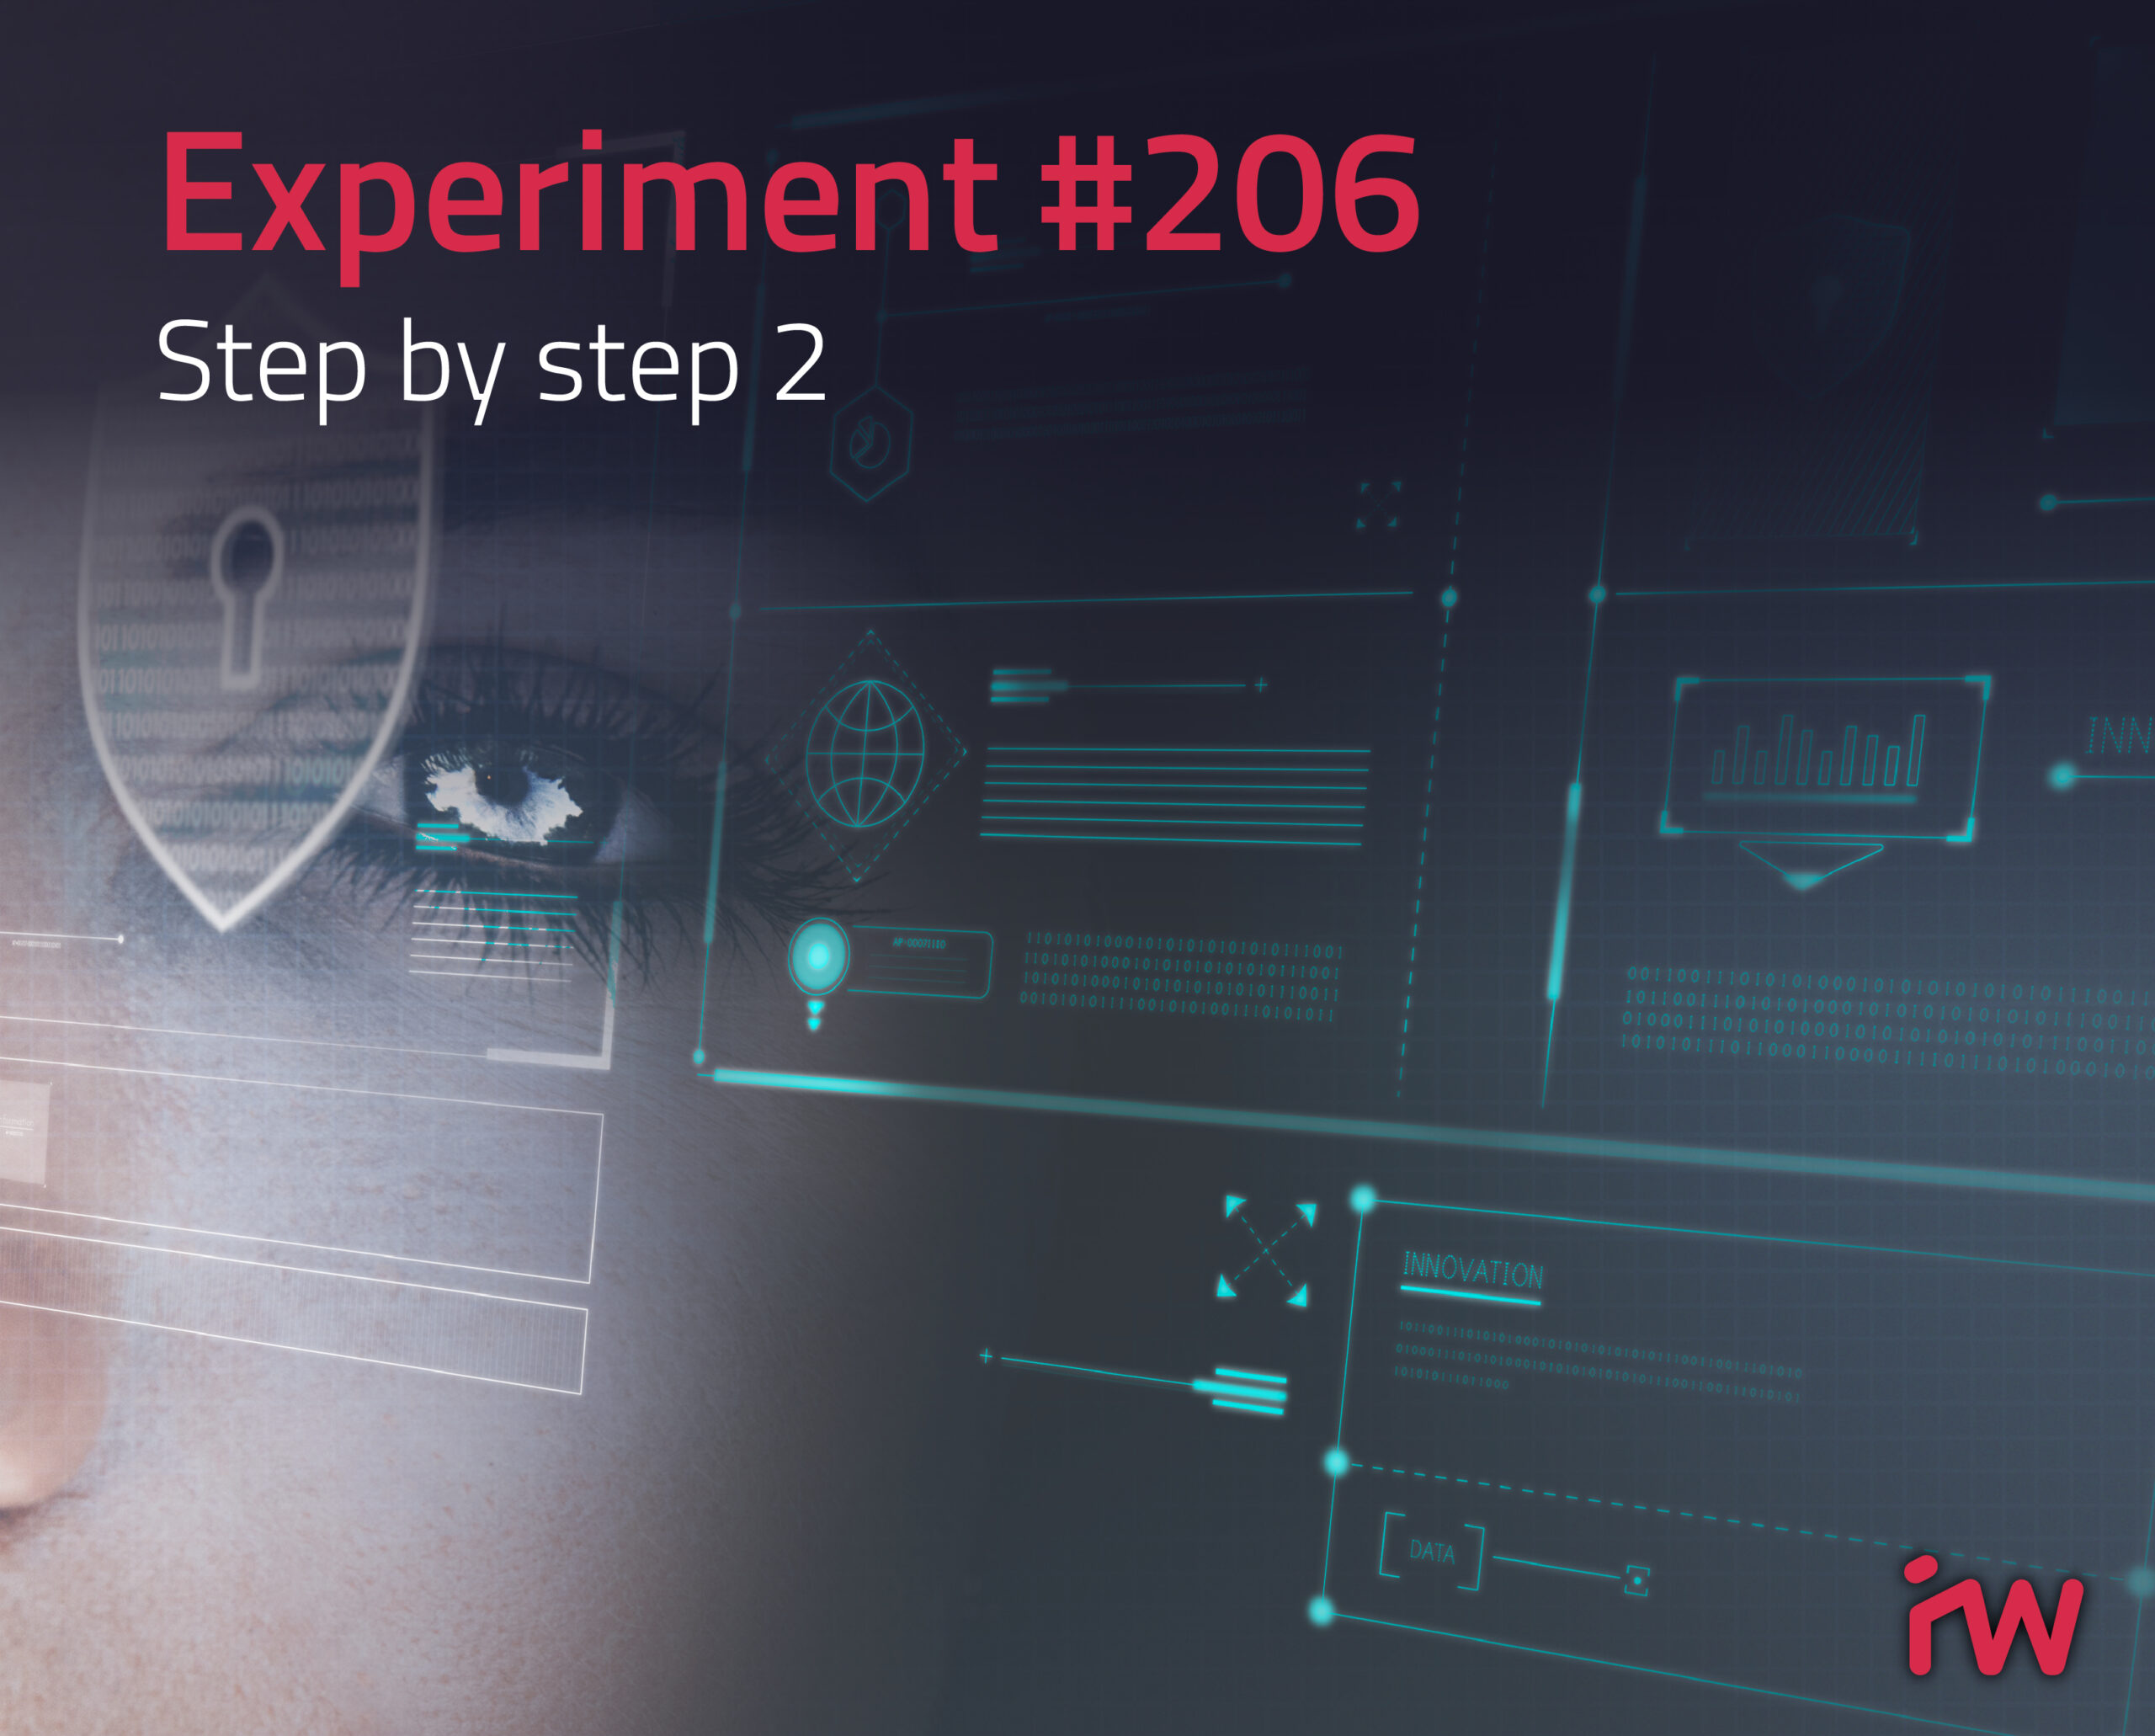 Experiment #206 Brand Presence - The analysis